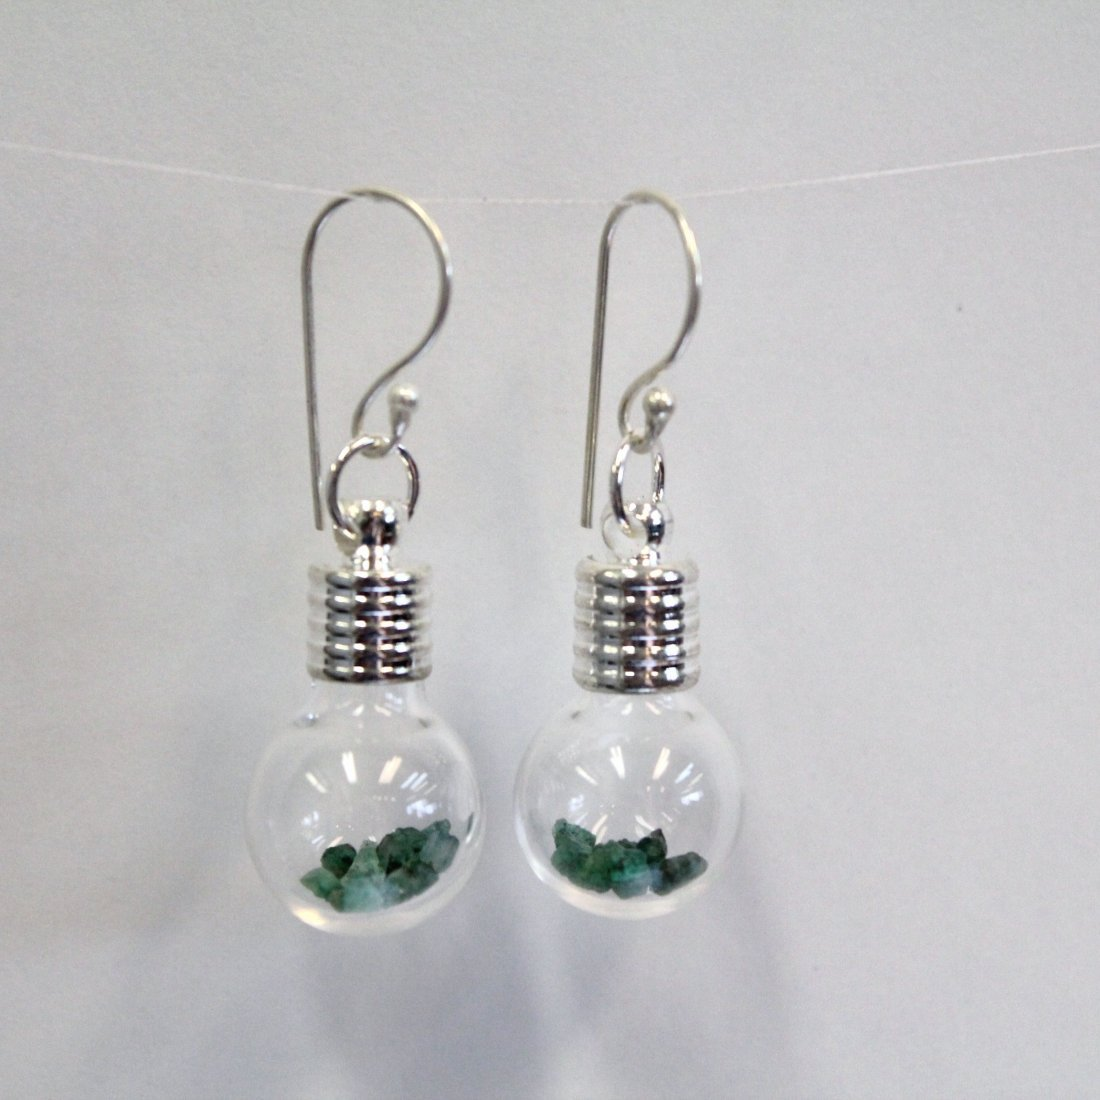 Round Glass Earrings with 2ct Natural Uncut Emerald fro